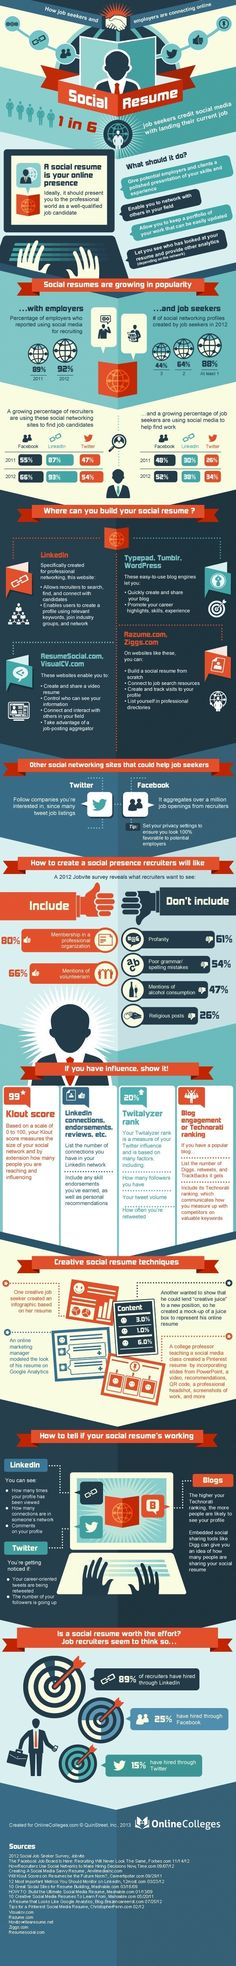 Social Resume: This infographic explores the growing role social media plays when recruiters look for new talent. Check it out for some handy tips! #socialmedia #recruiting #career #advice #infographic